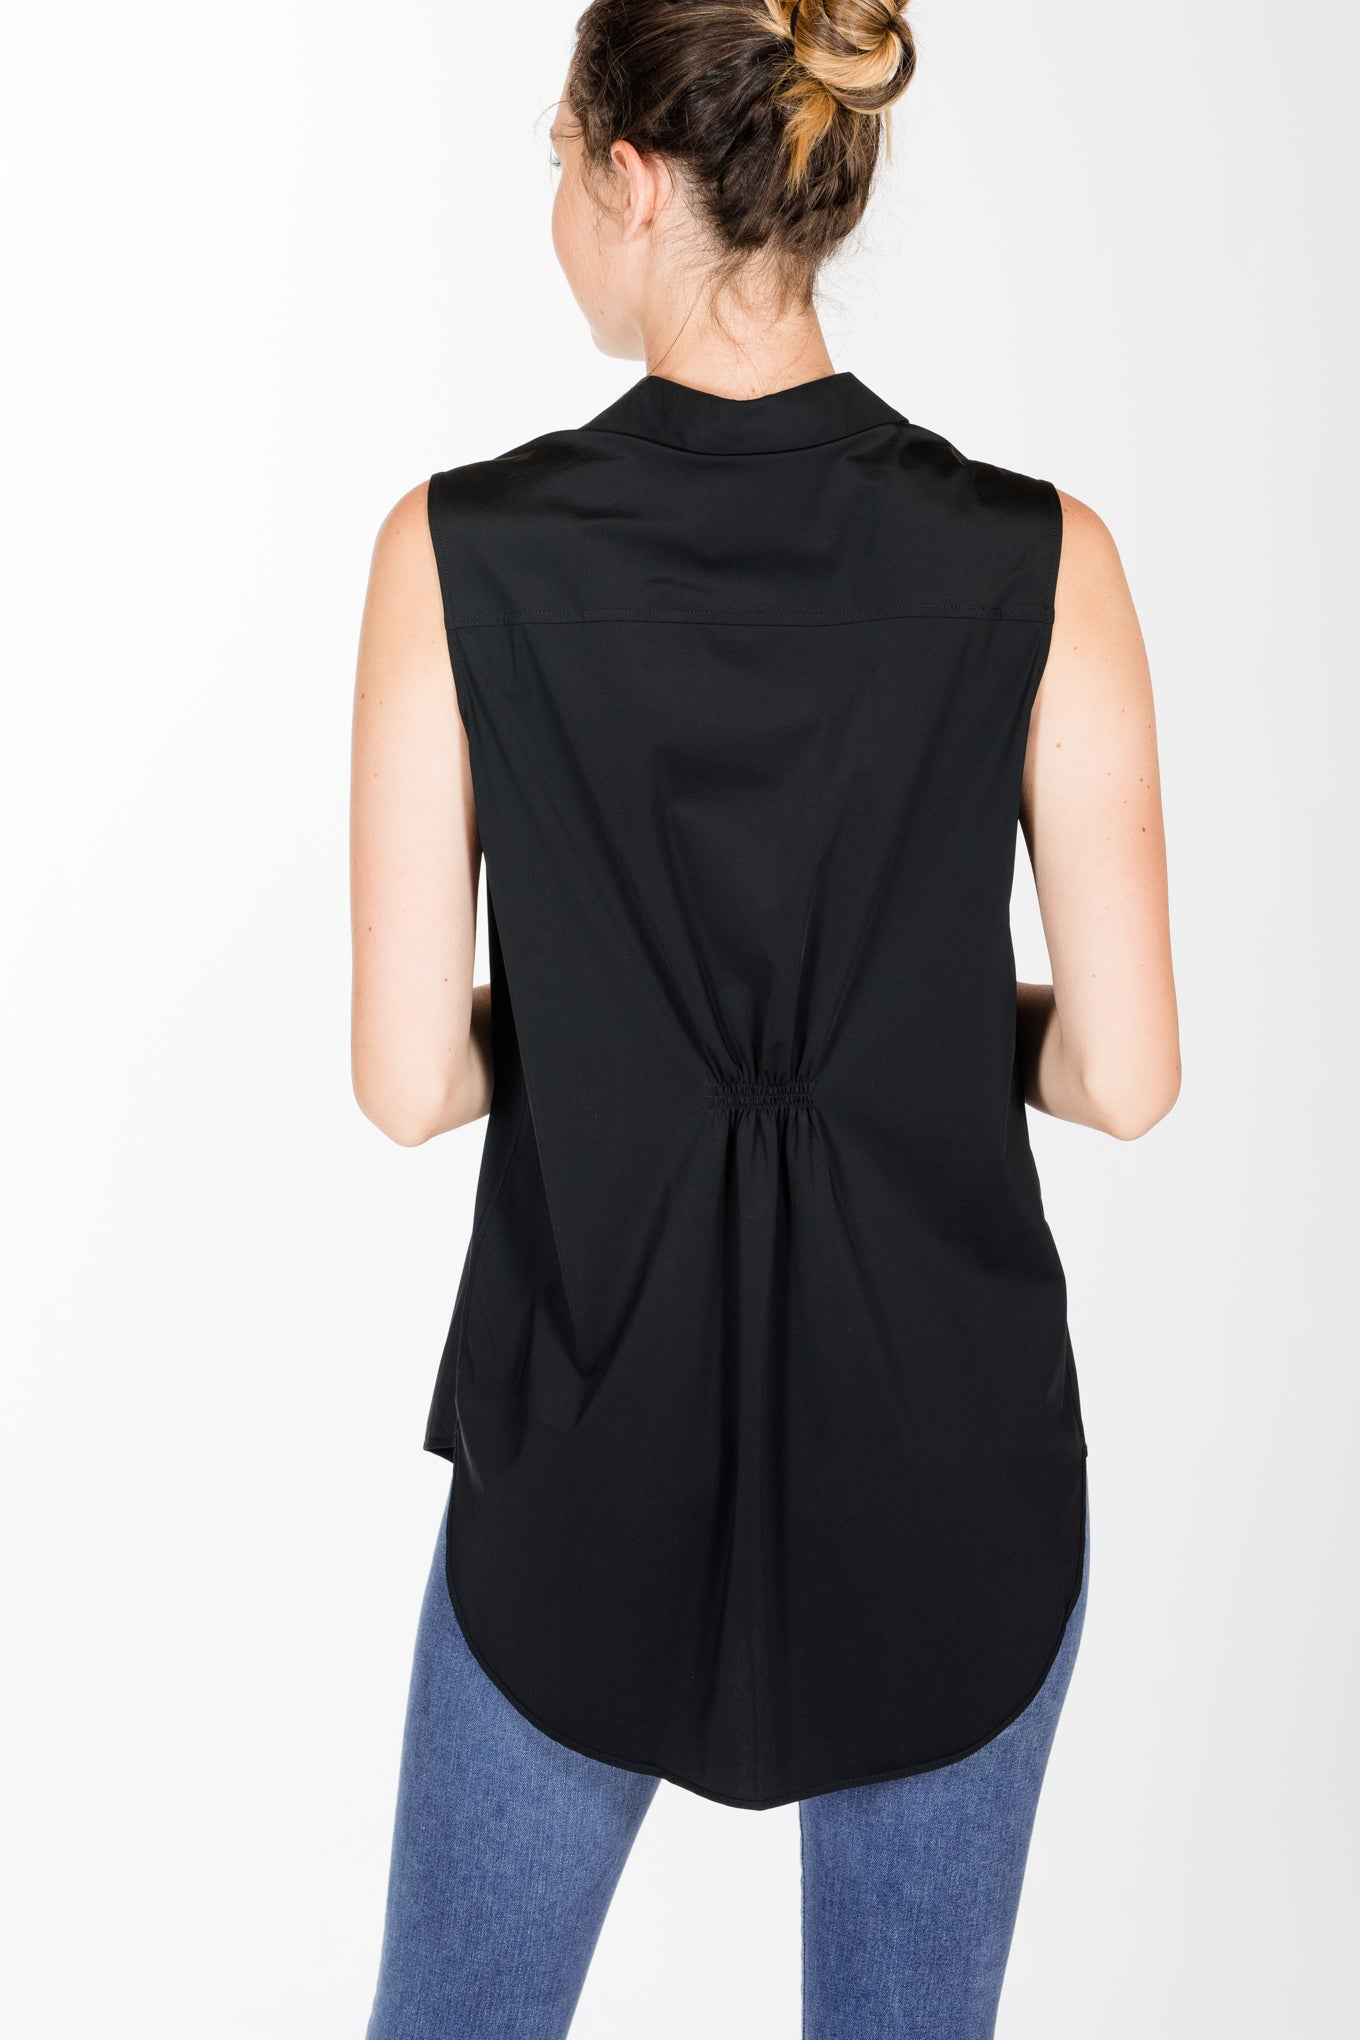 Lysse.June Button Down-Black